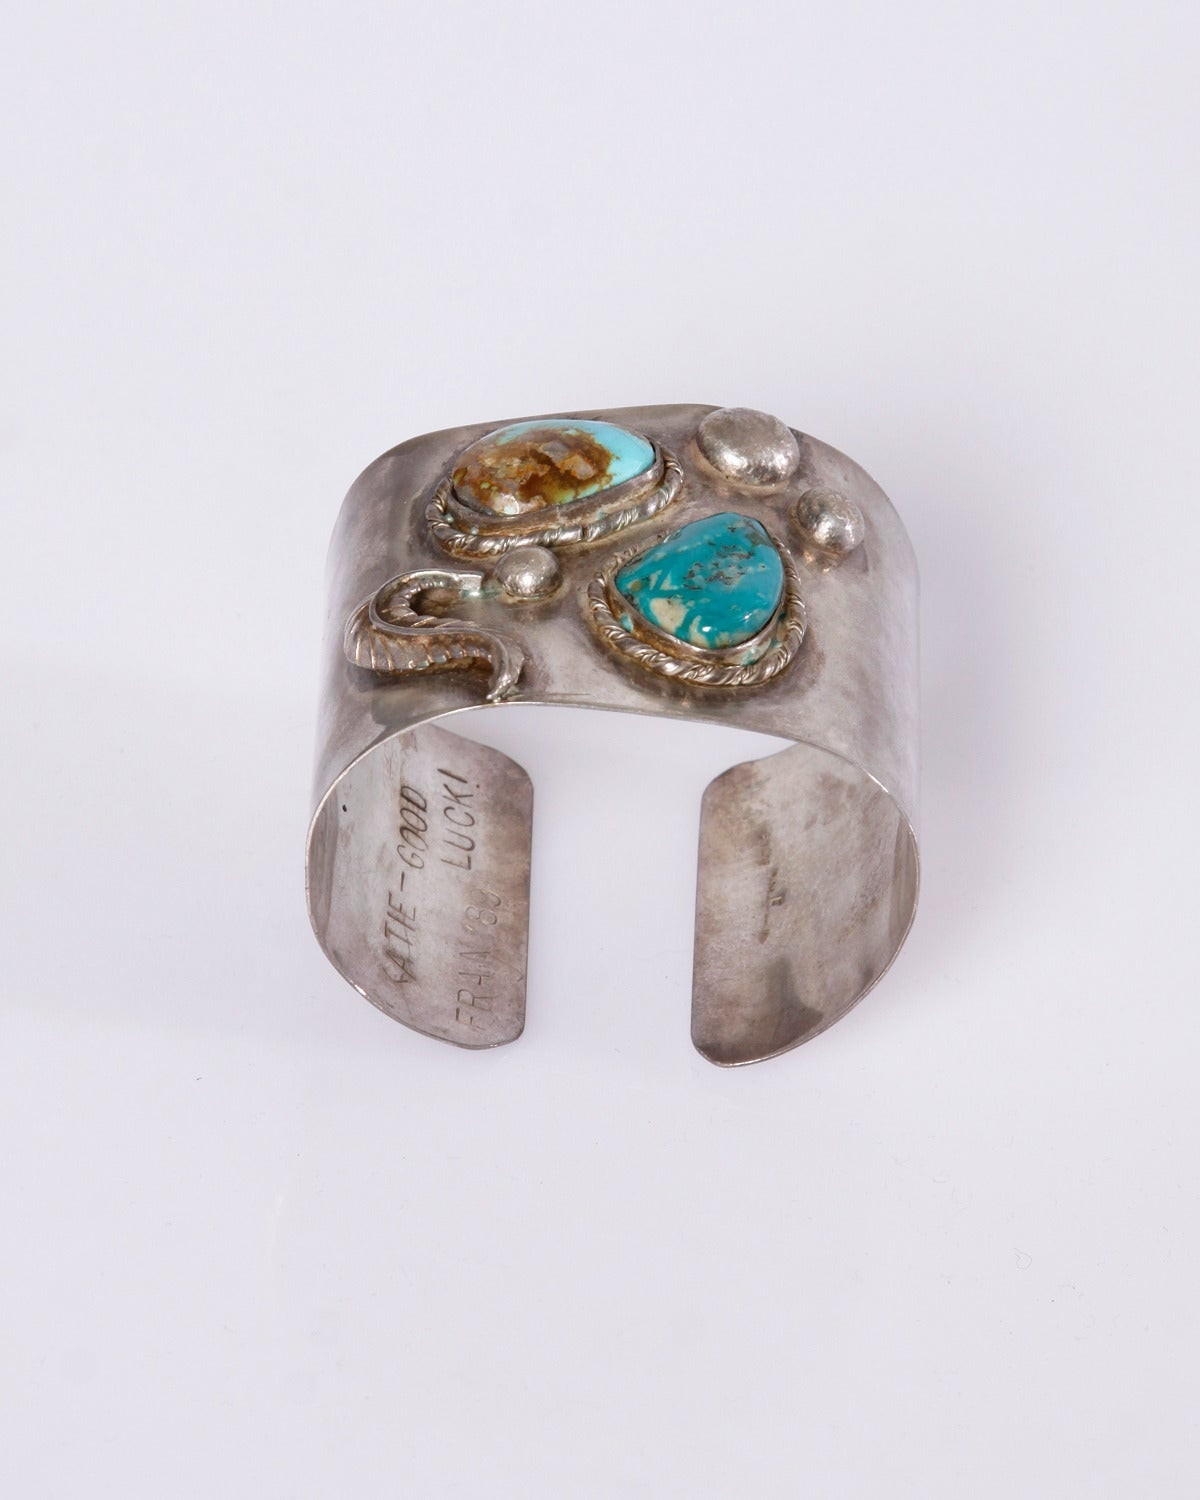 Native American Vintage 1970s Sterling Silver Turquoise Cuff Bracelet For Sale 2